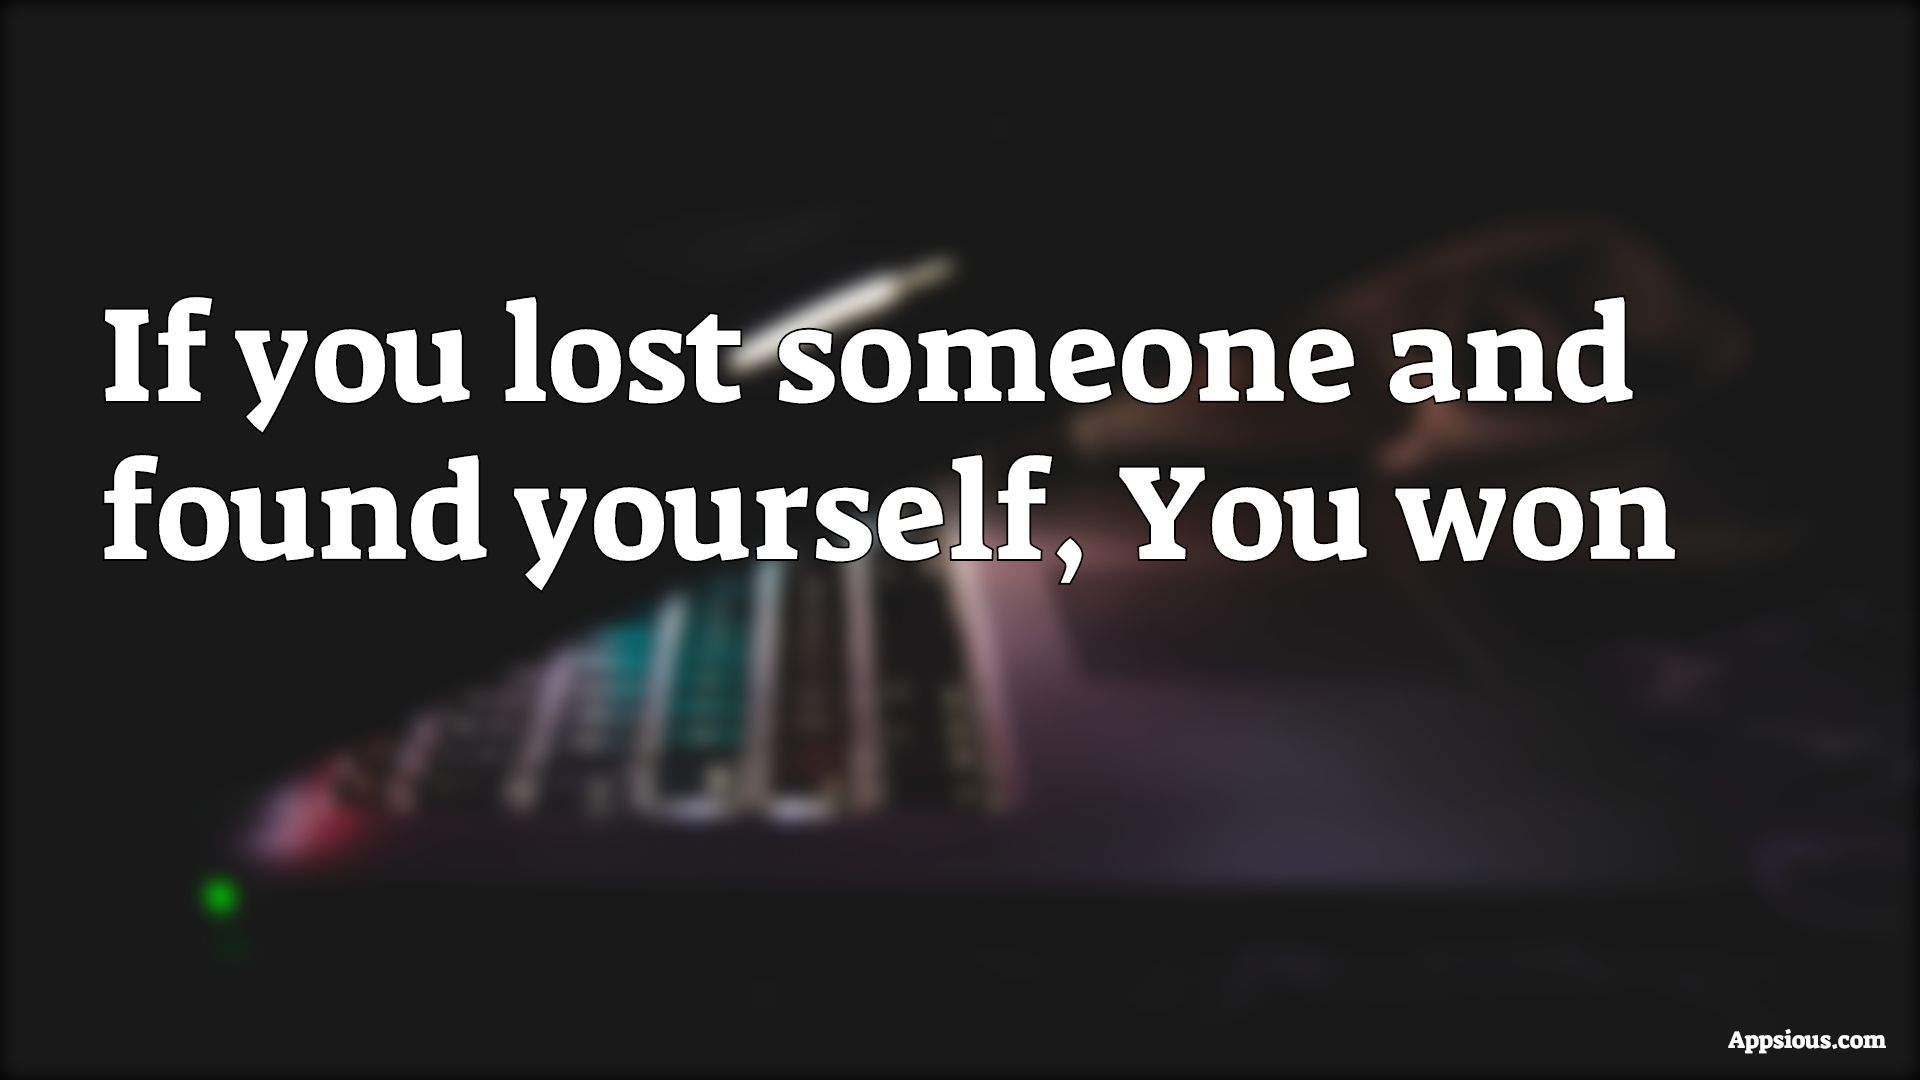 If you lost someone and found yourself, You won